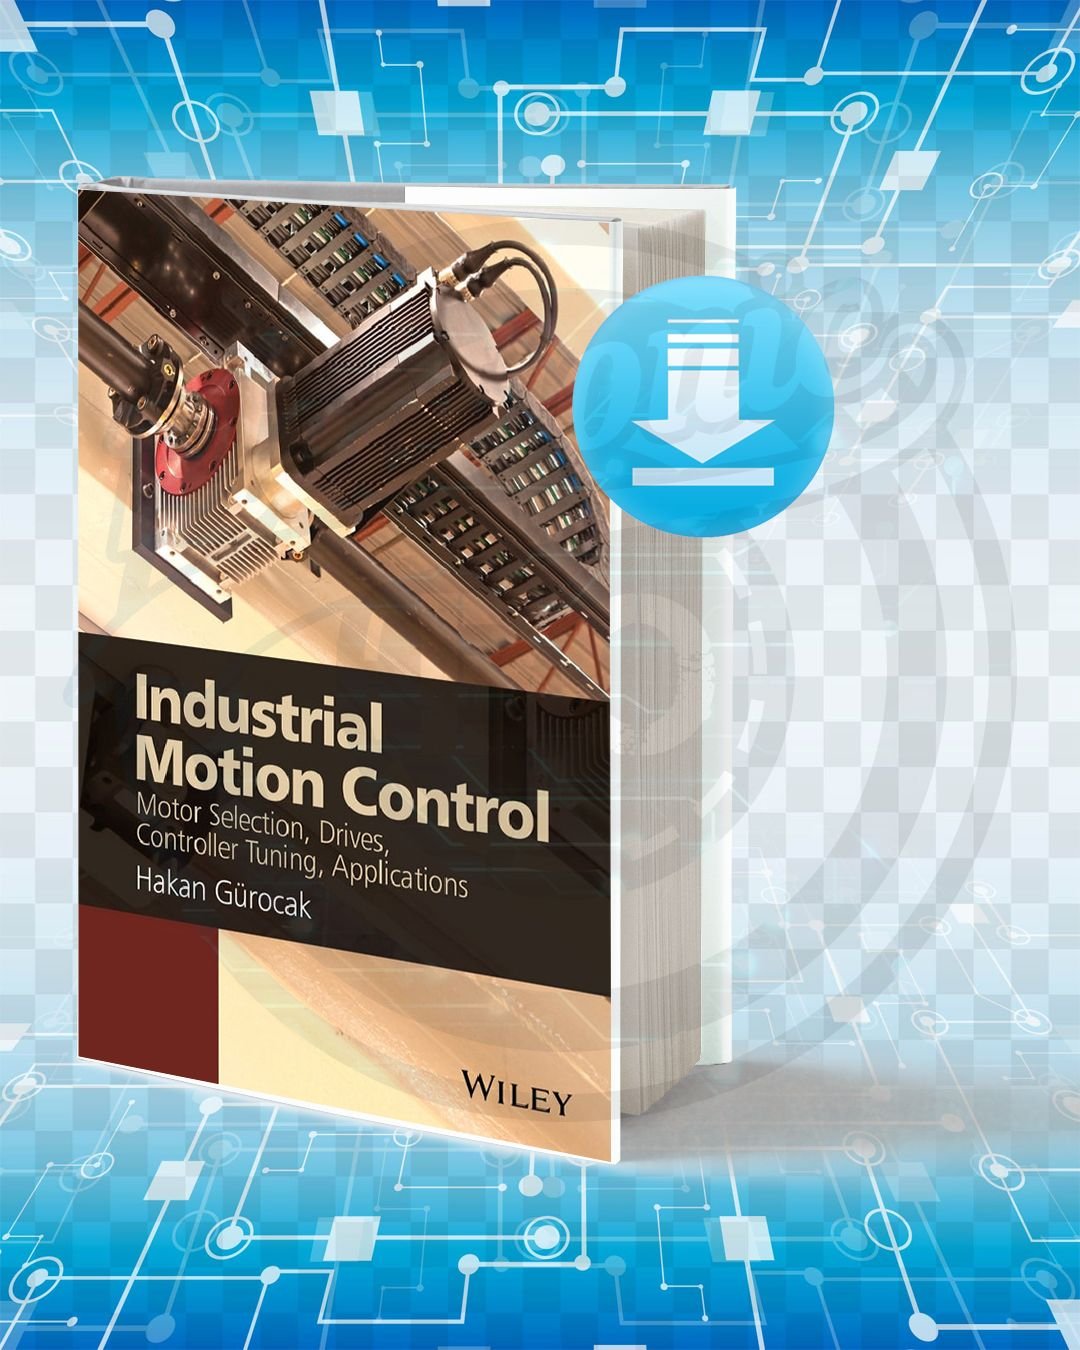 Download Industrial Motion Control Motor Selection Drives Controller Tuning Applications Electrical Engineering Books Electronic Circuit Projects Motion